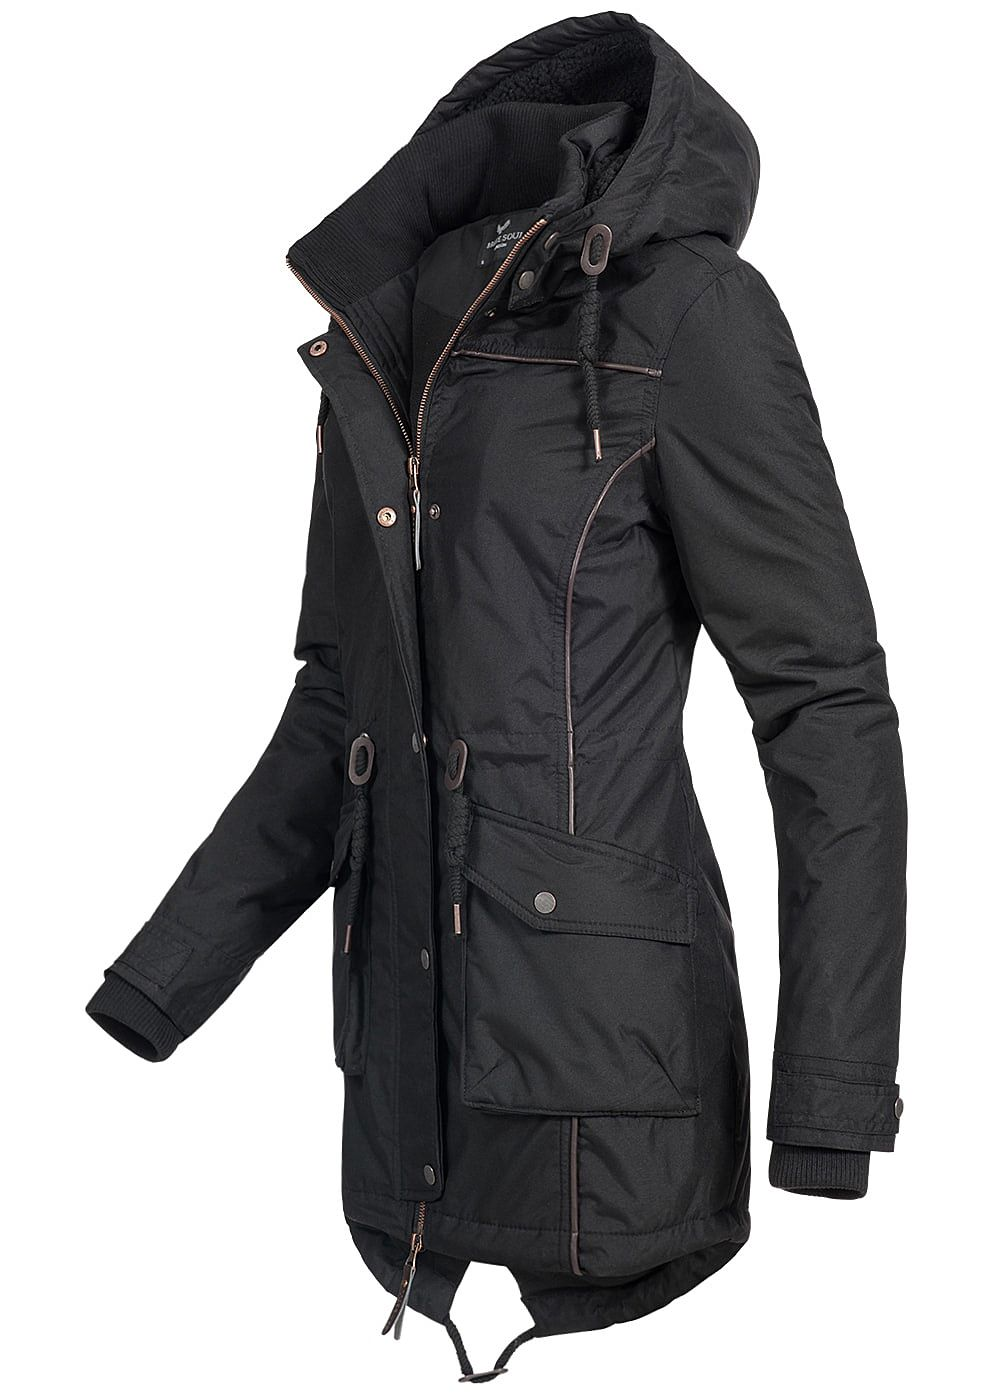 seventyseven lifestyle damen winter parka kapuze gef ttert 2 taschen schwarz 77onlineshop. Black Bedroom Furniture Sets. Home Design Ideas